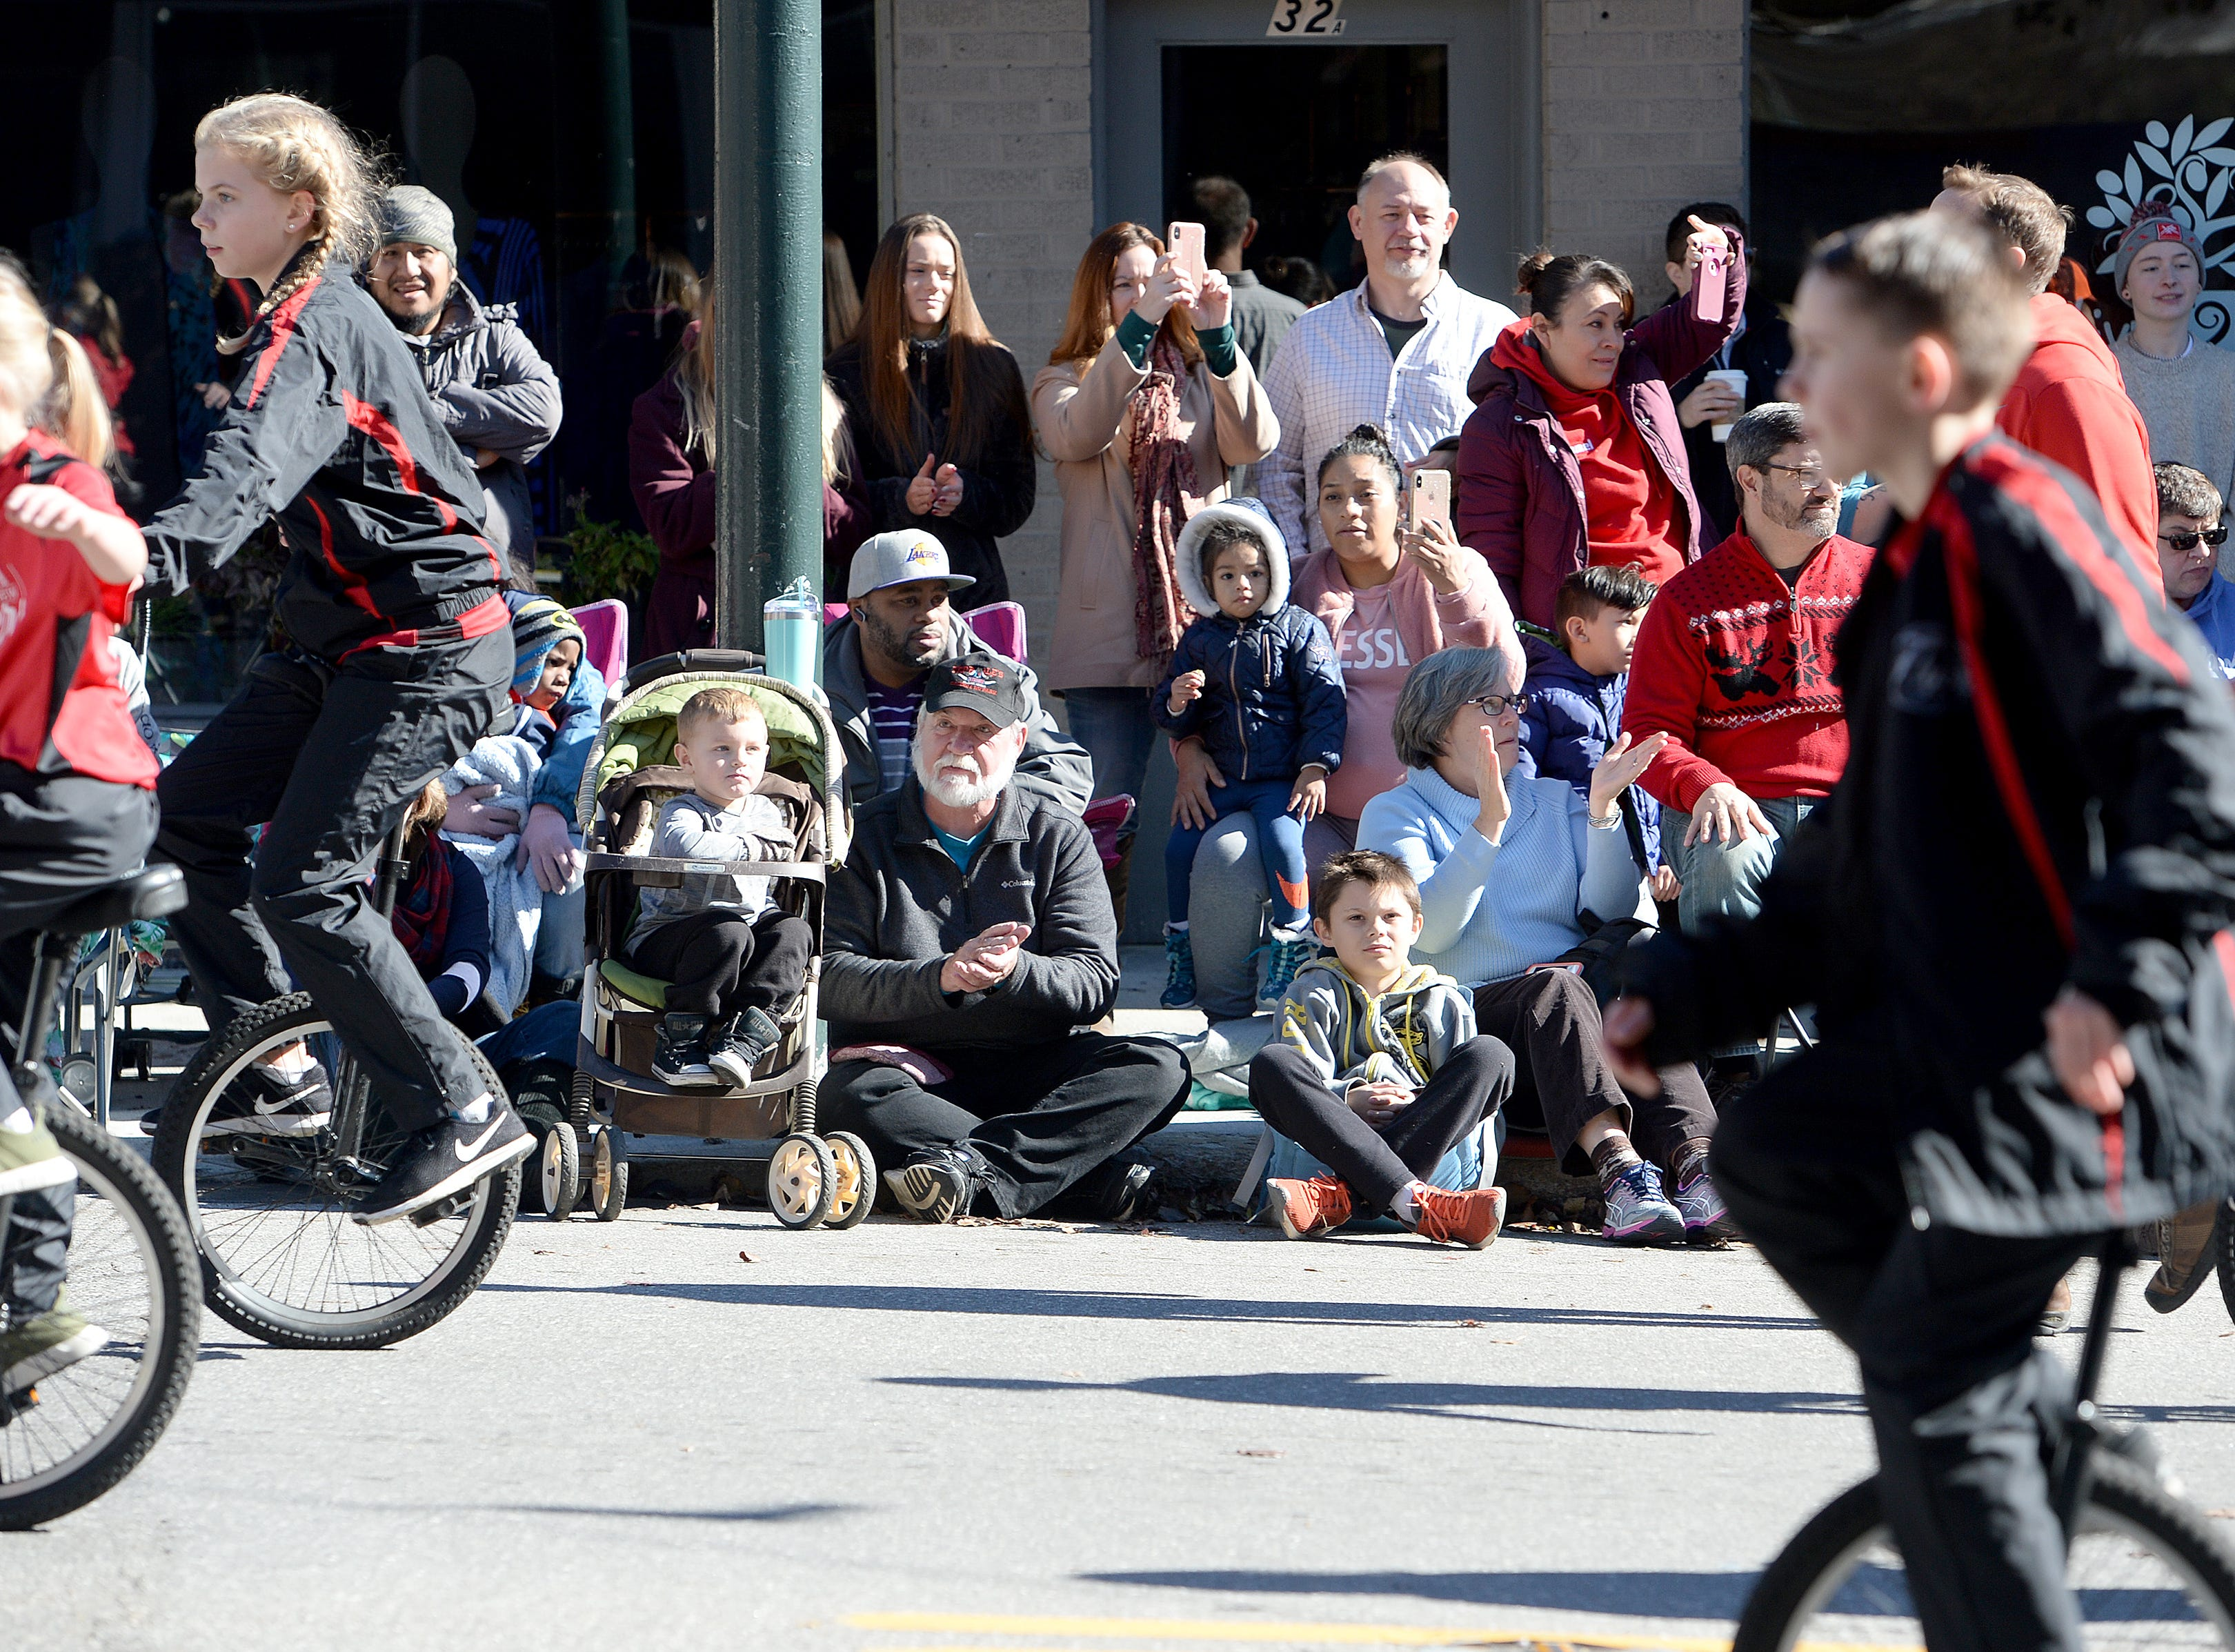 Spectators watch as the Fairview Flyers Unicycle team makes their way up Biltmore Avenue during the 2018 Asheville Holiday Parade on Nov. 17, 2018. More than 100 entries walked through the streets lined with spectators in the parade this year.